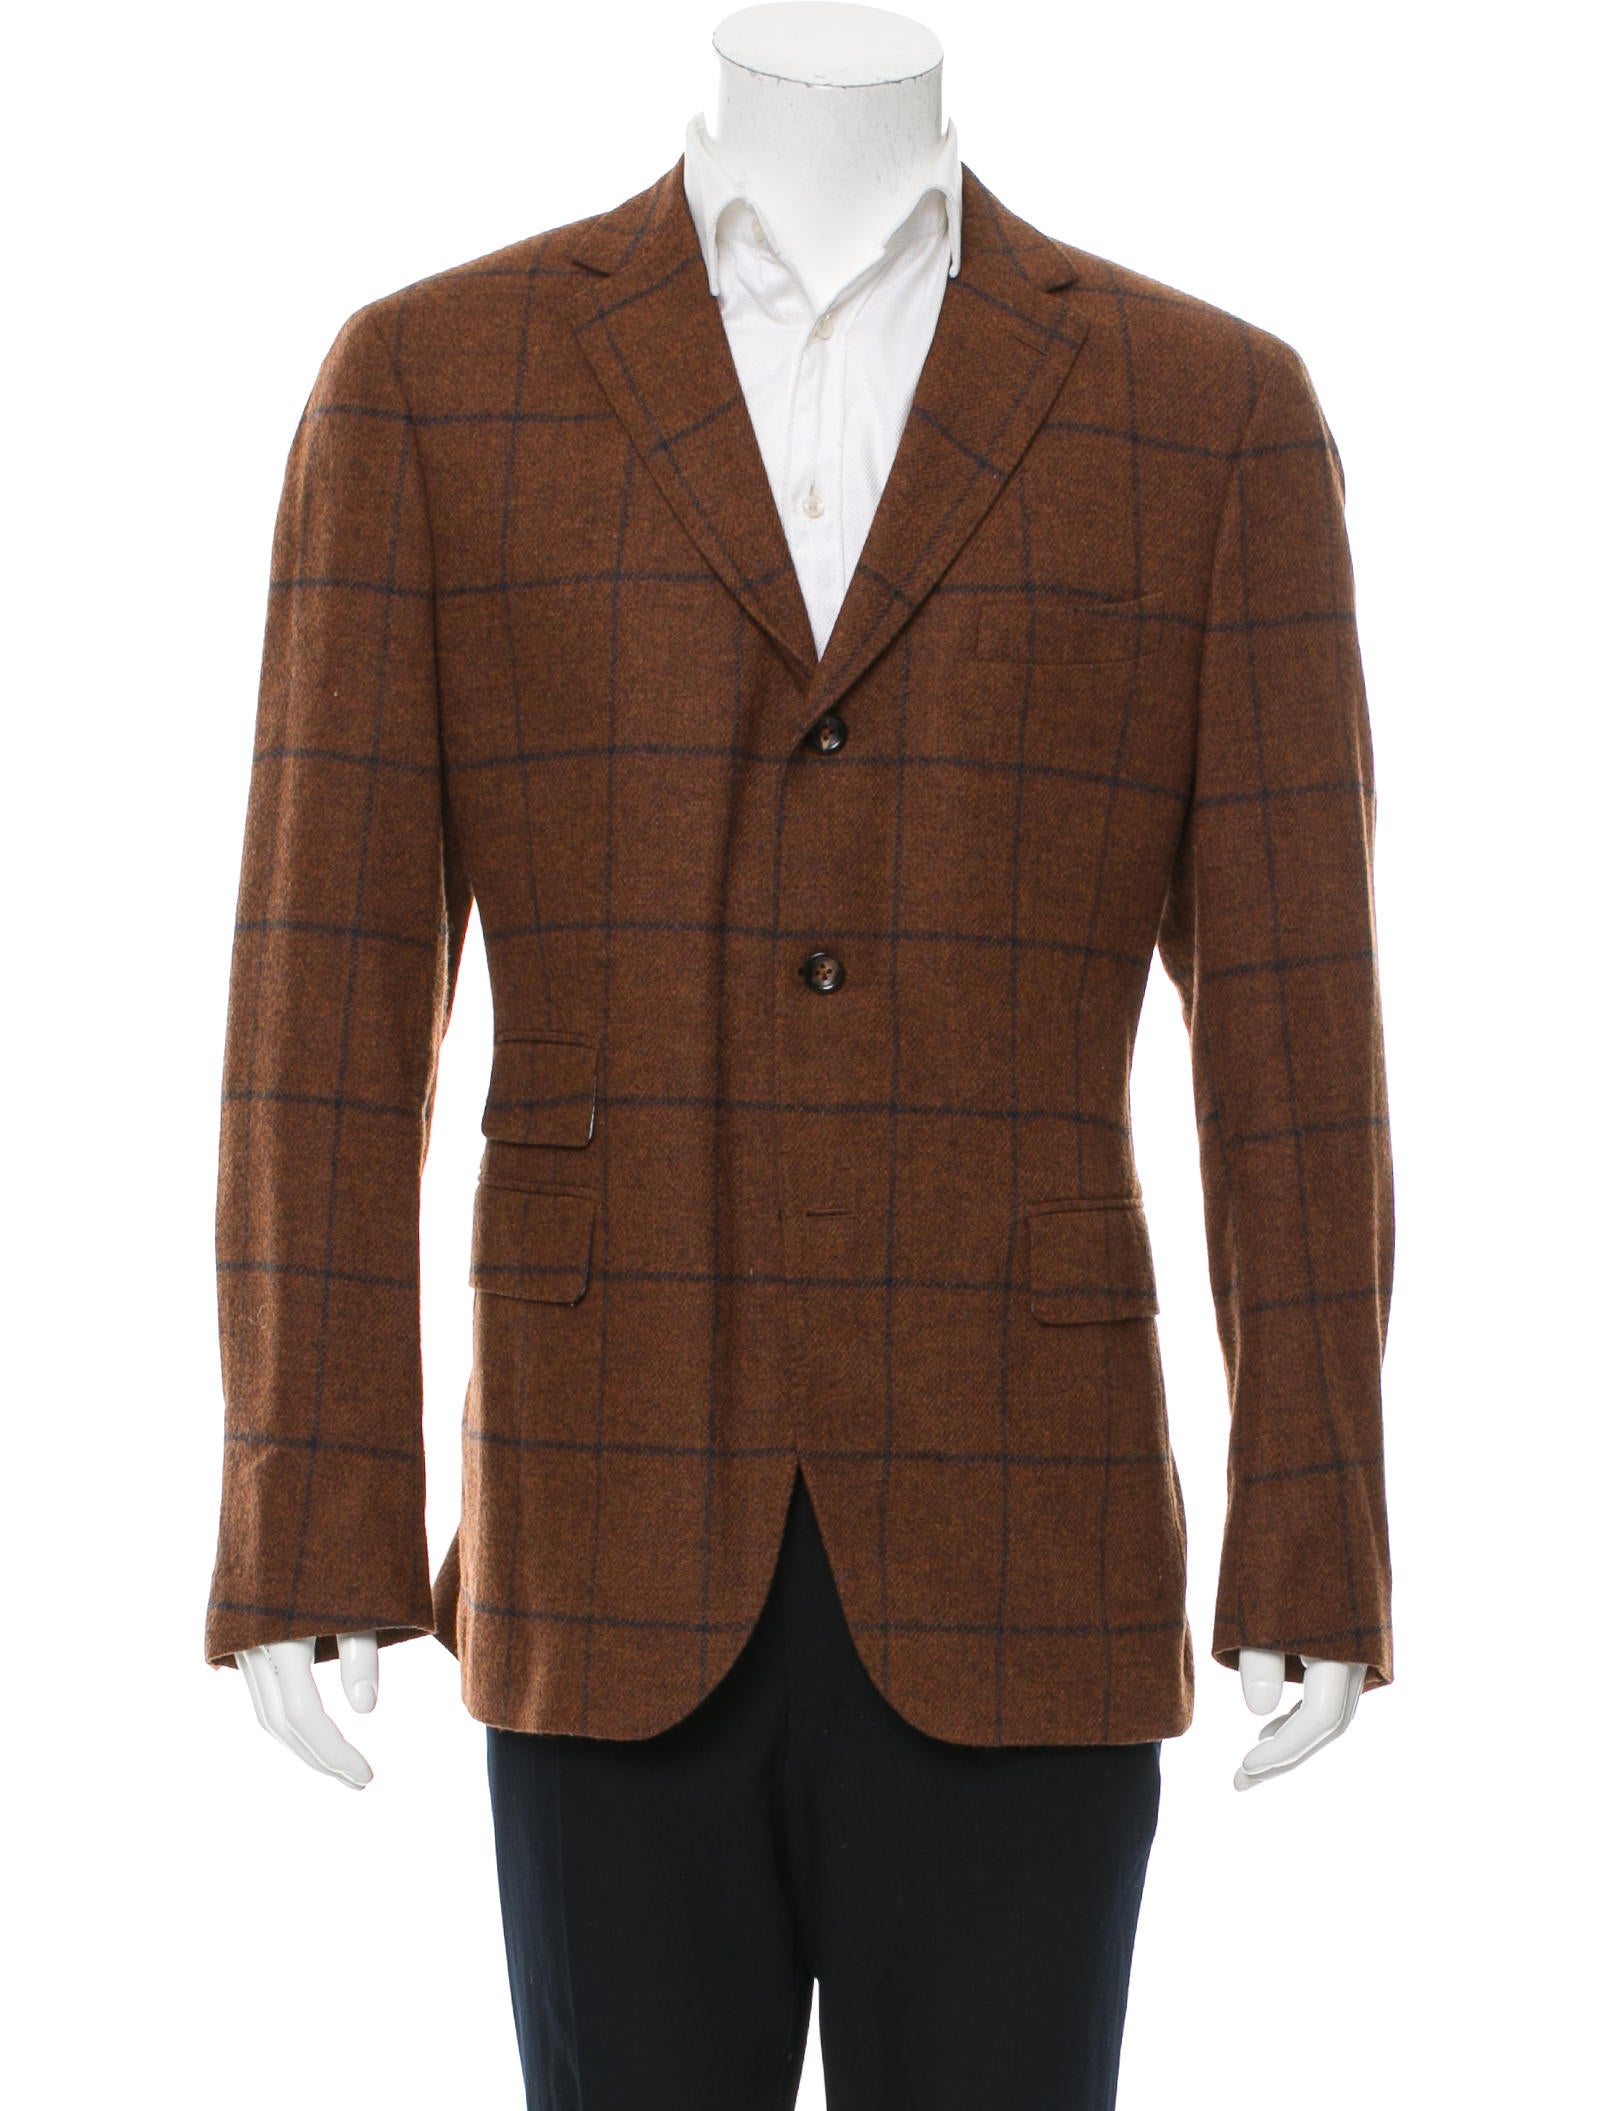 Dec 19,  · The three-button, single-breasted jacket is a classic, but there are some sartorial guidelines to looking confident and fashion-forward. The key is knowing that, when going from top button to bottom, there is a Button Mantra of Always, Sometimes, shopnew-5uel8qry.cf: Ealexander.